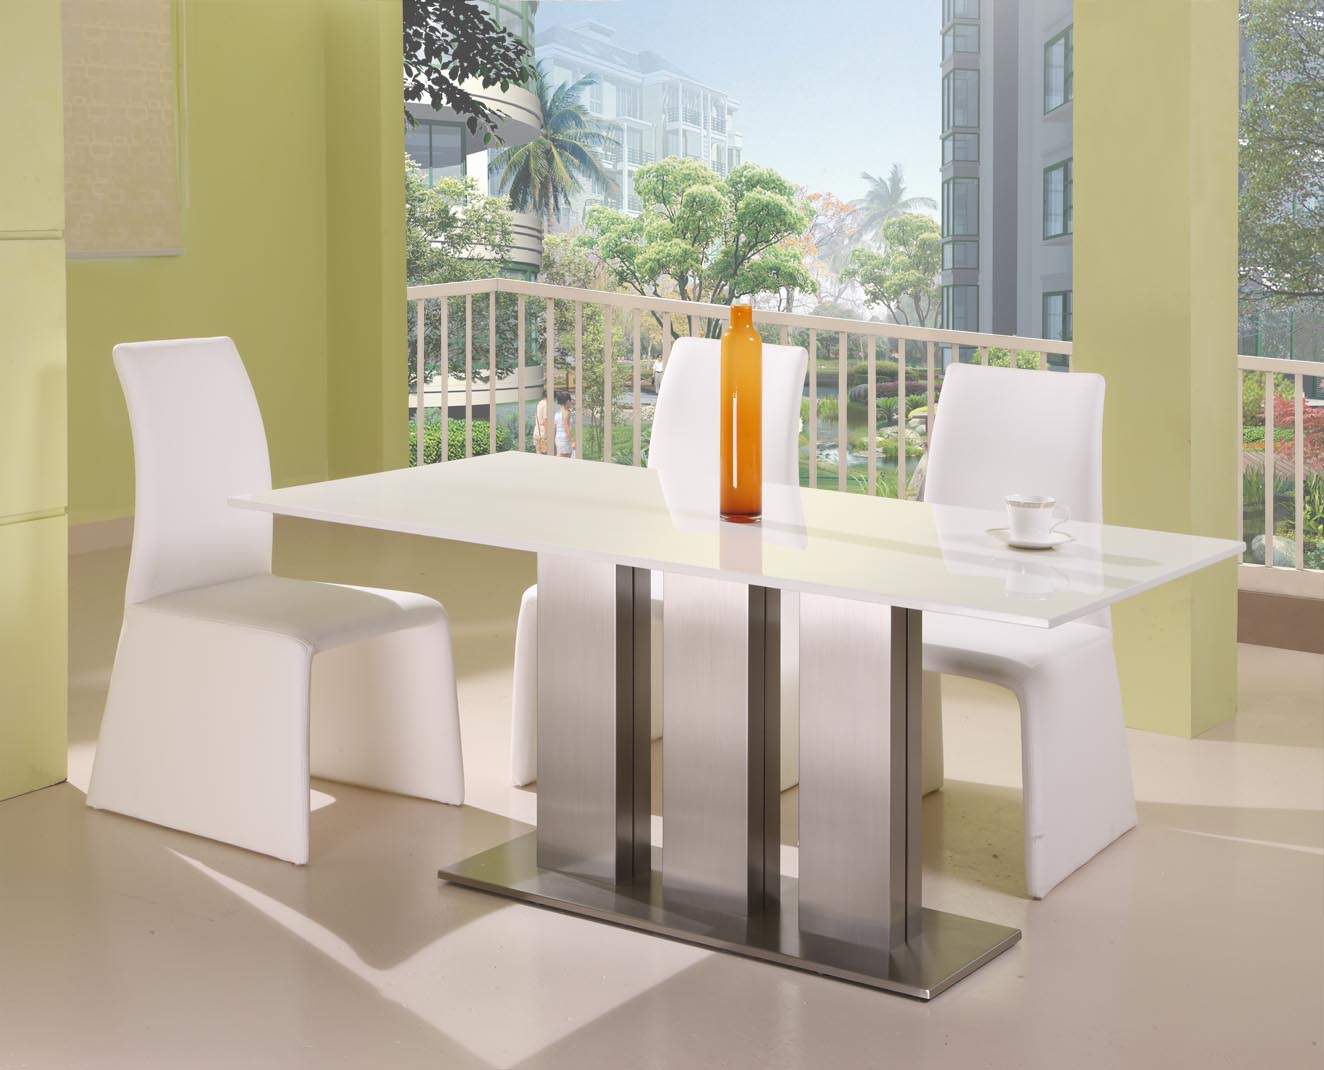 Remarkable Modern White Marble Dining Table Set 1324 x 1070 · 133 kB · jpeg